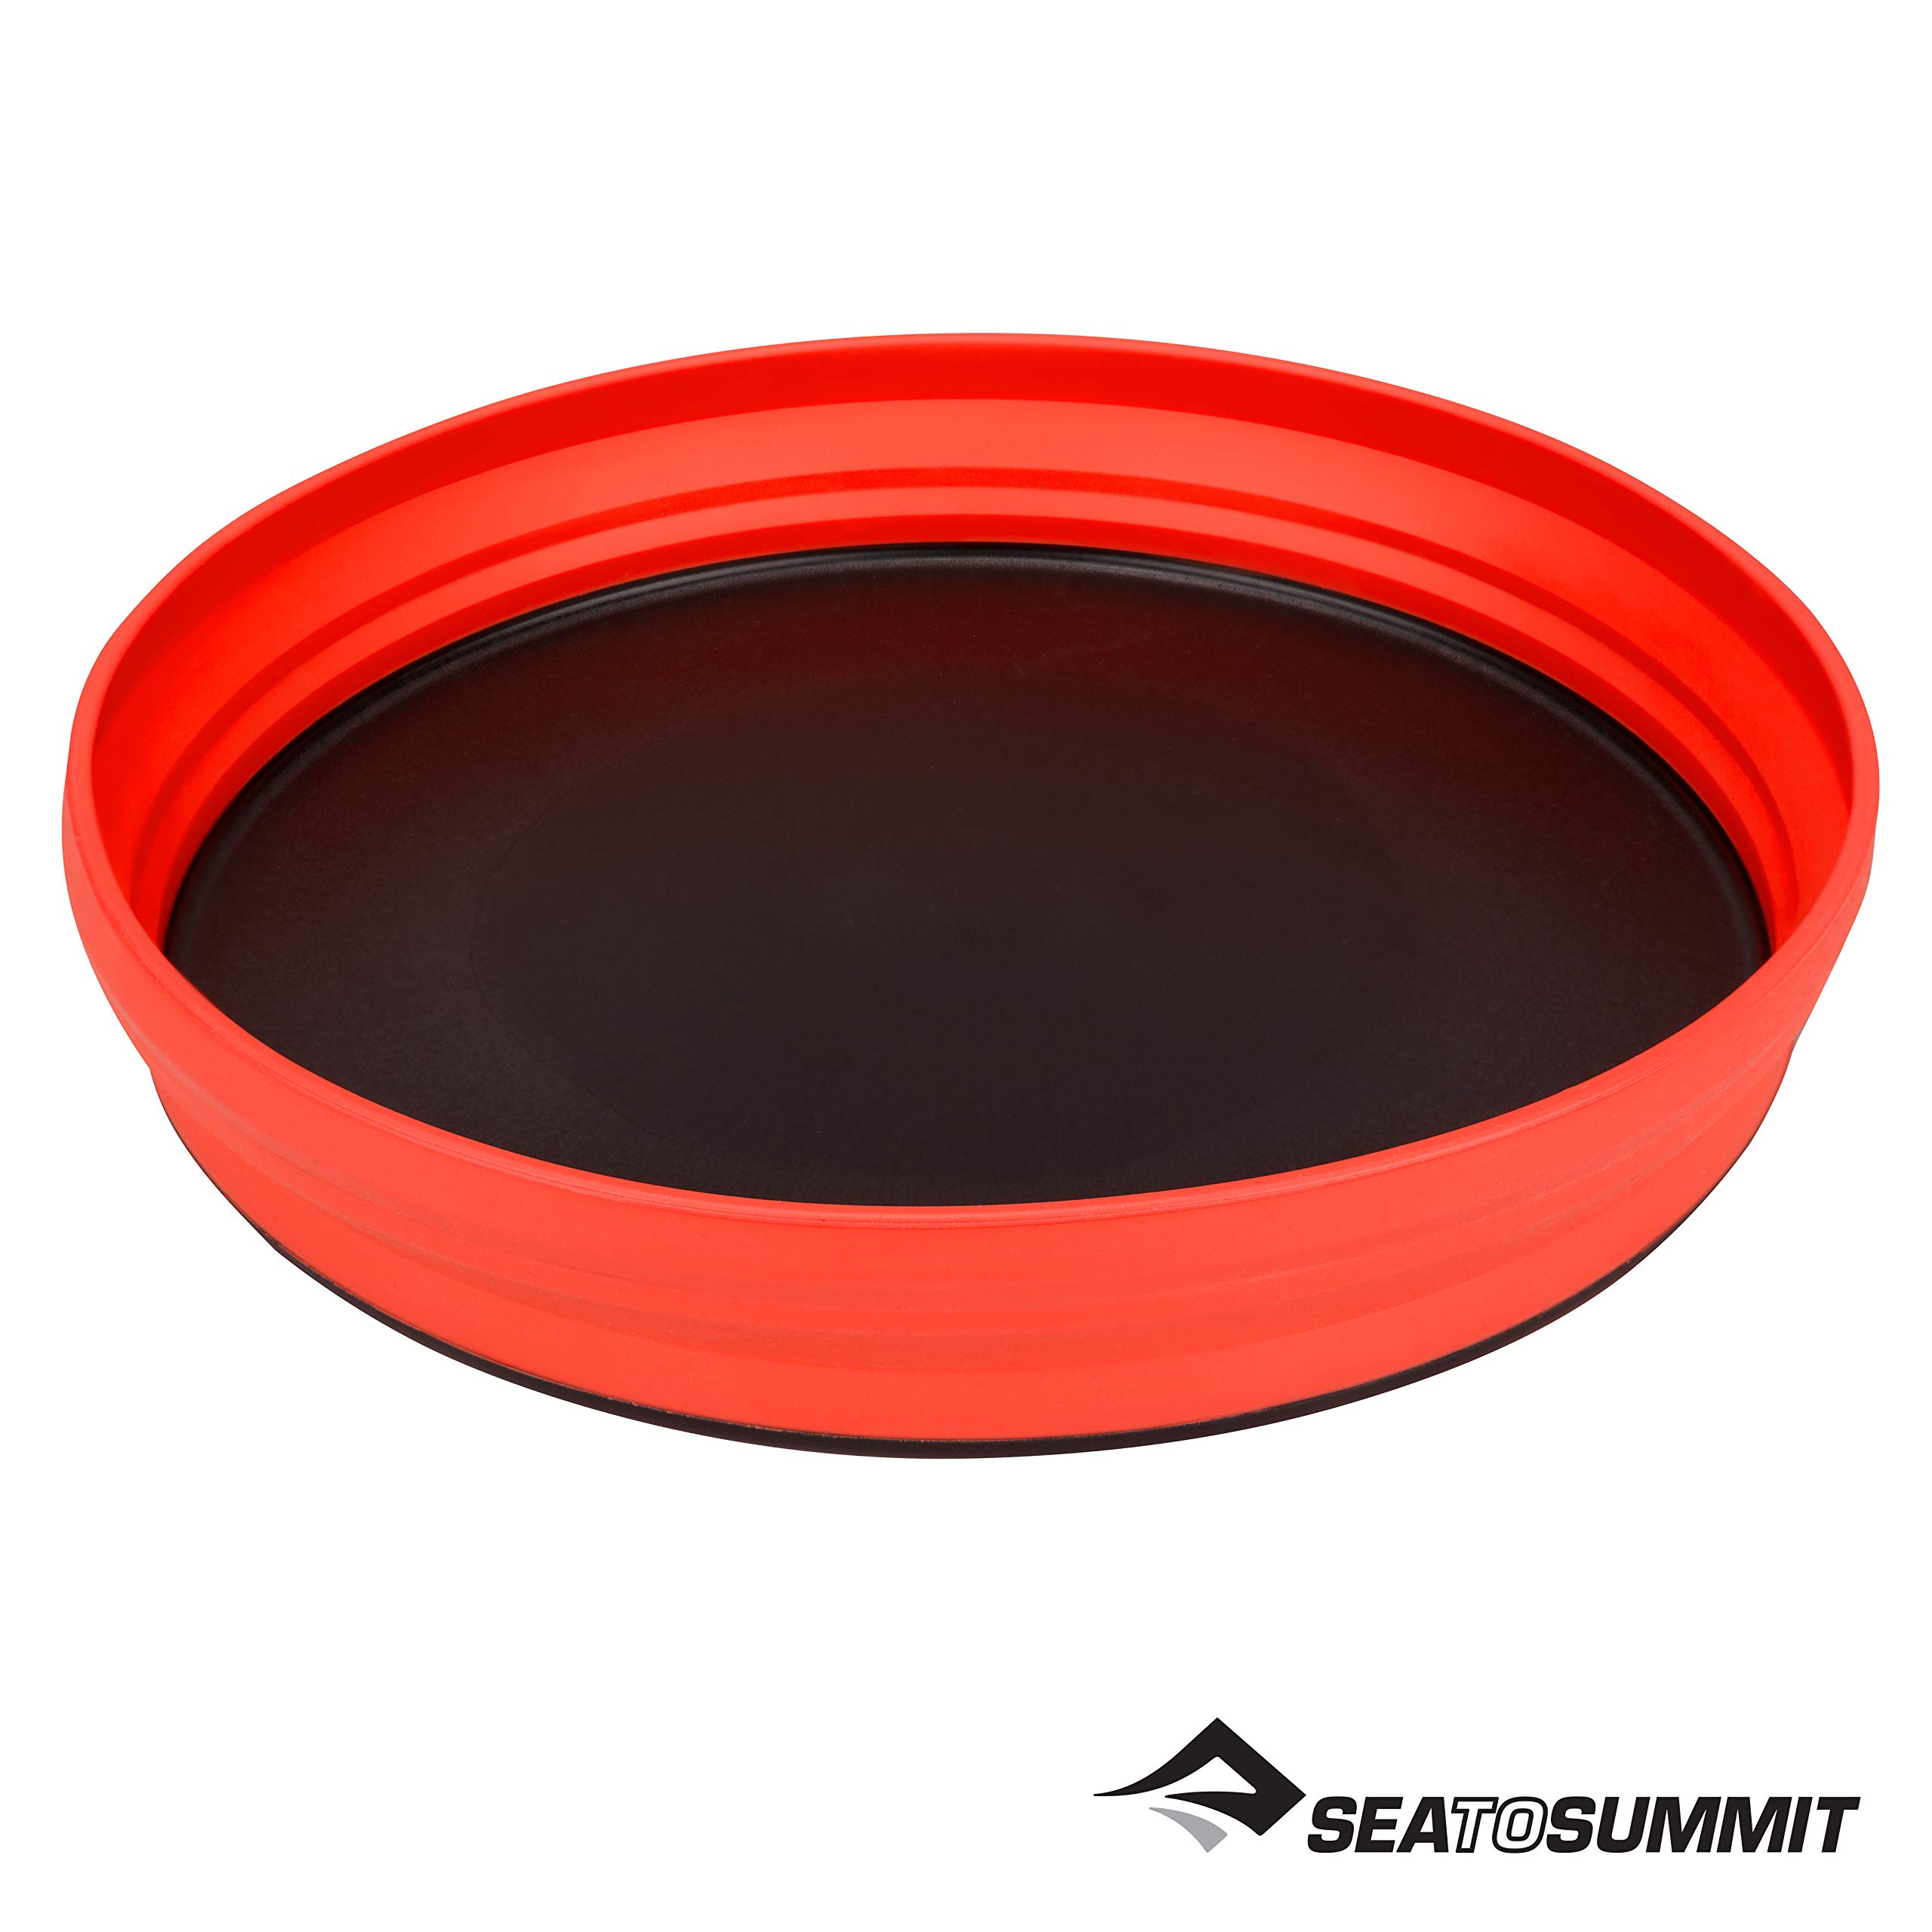 Sea to Summit X Plate, Red by Sea to Summit